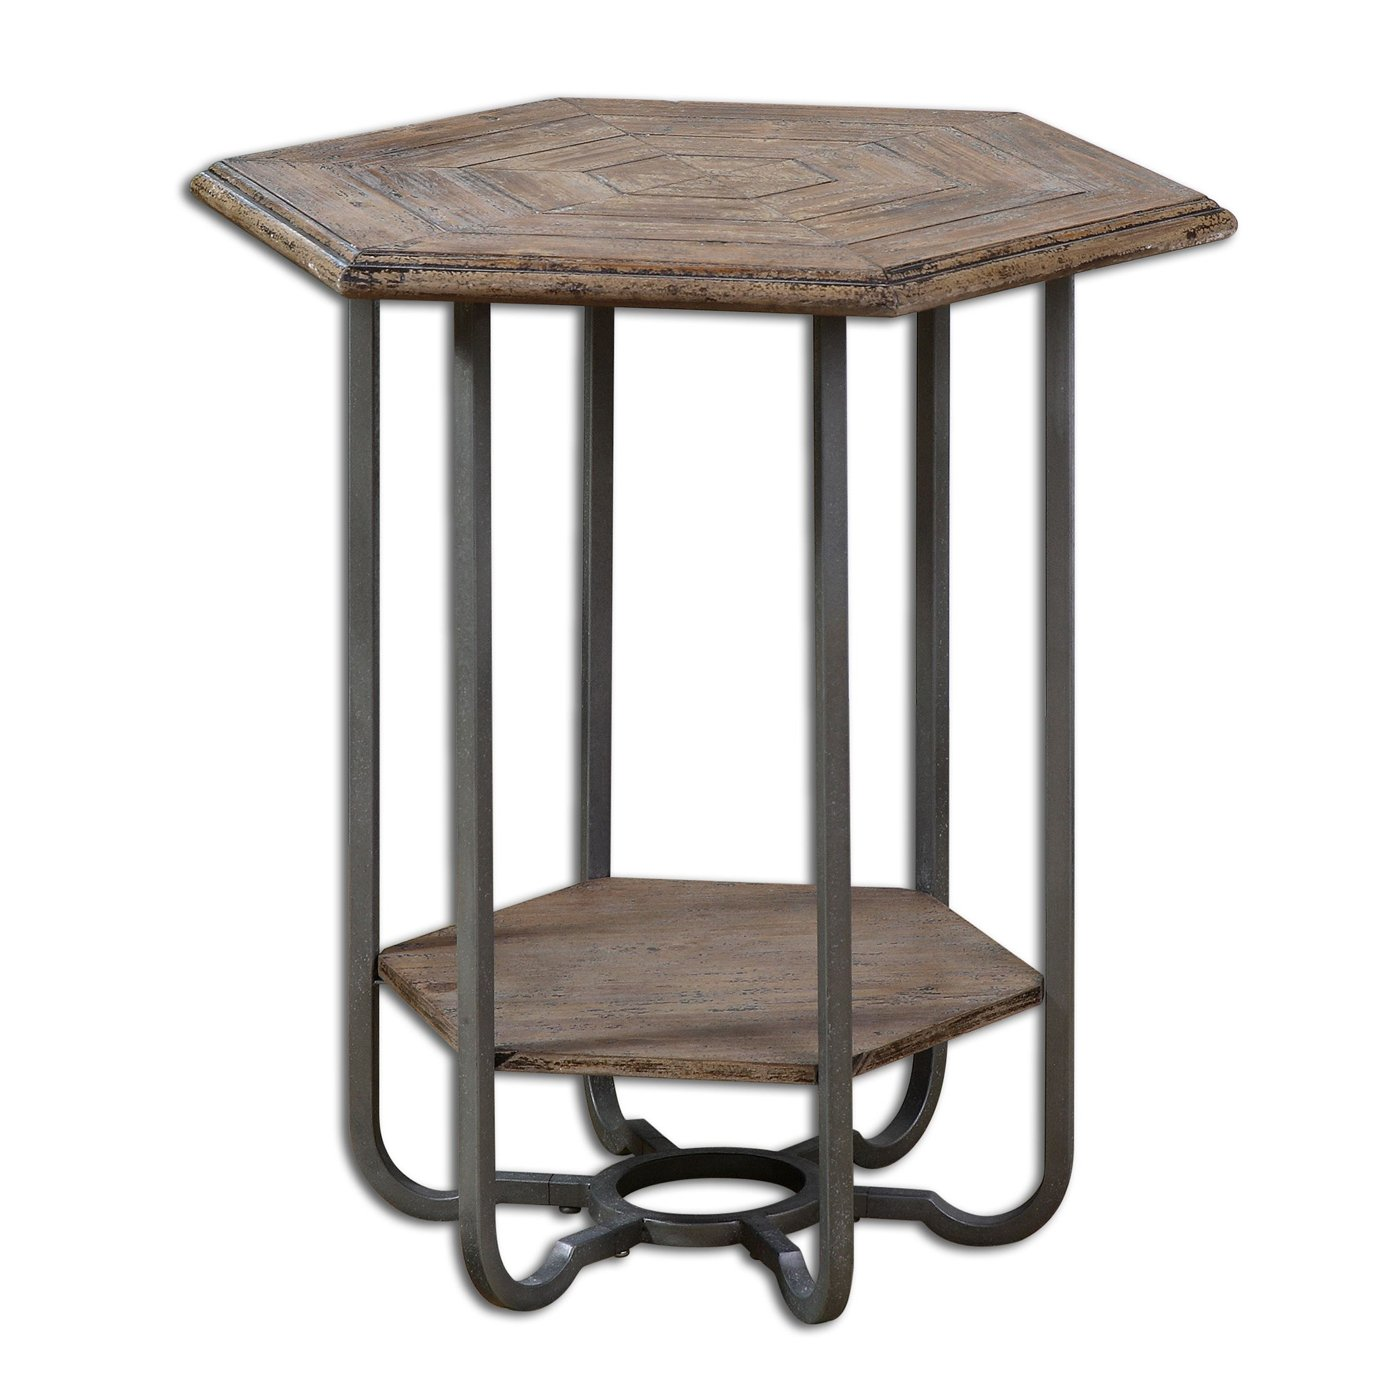 uttermost son wooden end table atg home goods accent sinley tables inch wide side bistro umbrella small crystal ball lamp solid wood round black coffee outdoor drink desk legs